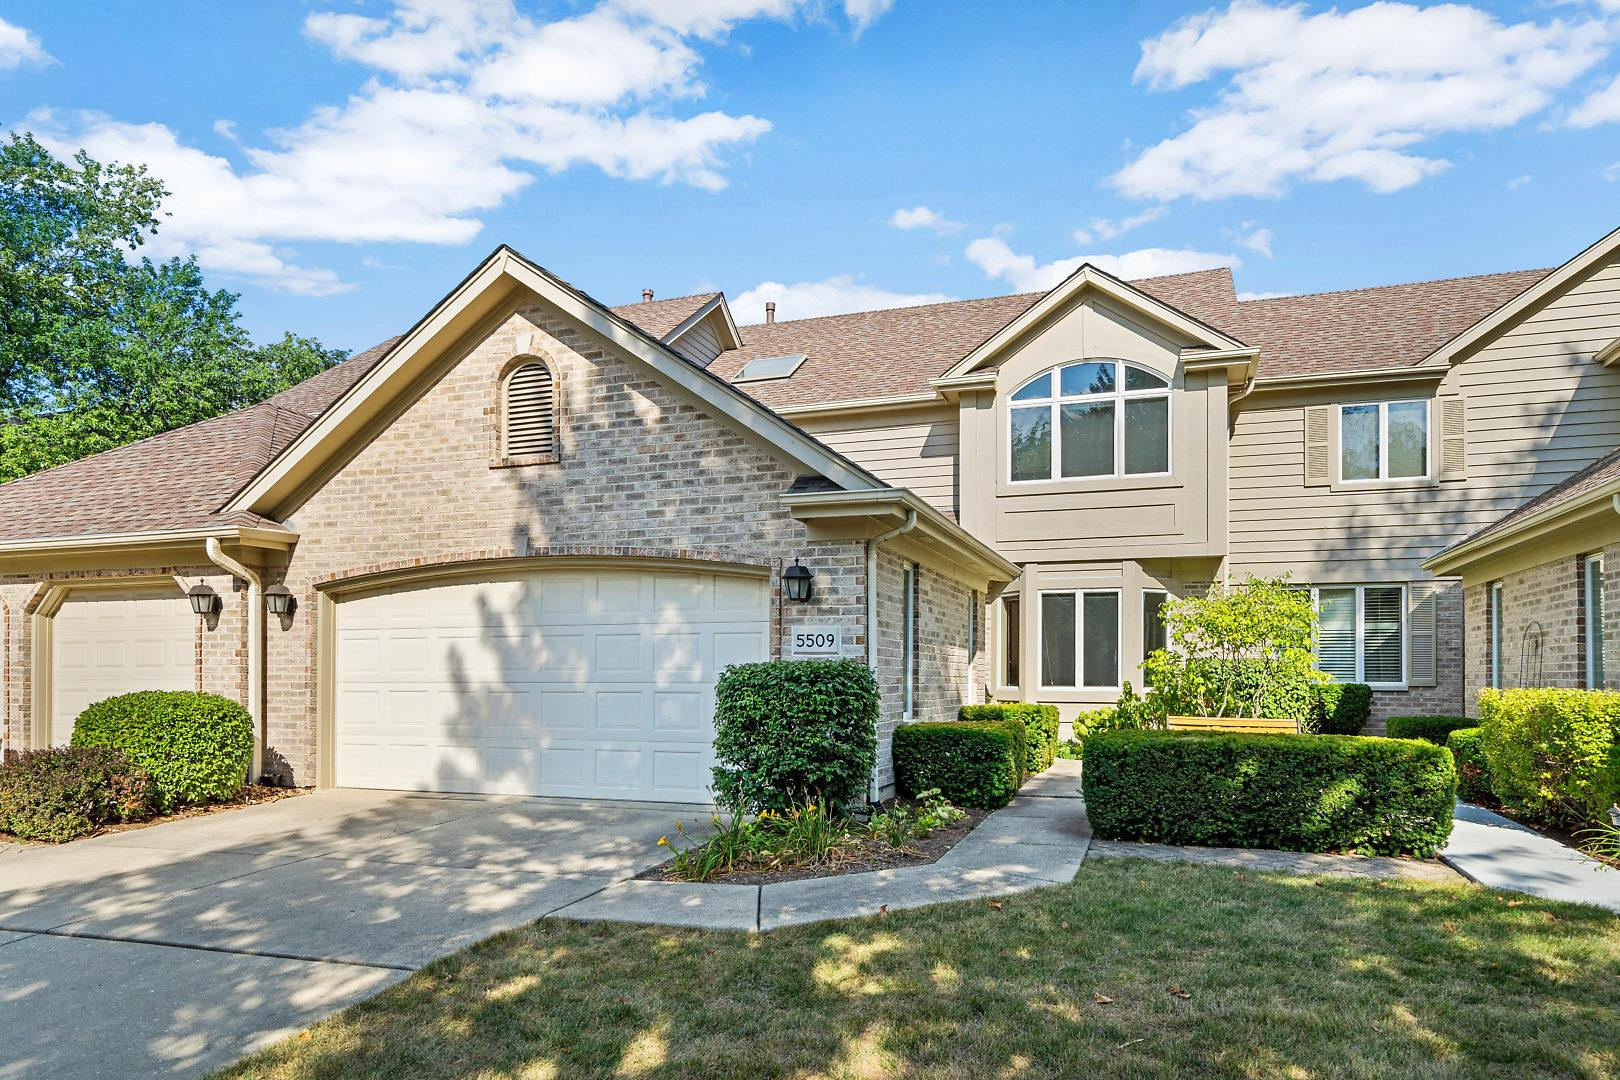 5509 Aspen Avenue, Downers Grove, IL 60515 - #: 10839298